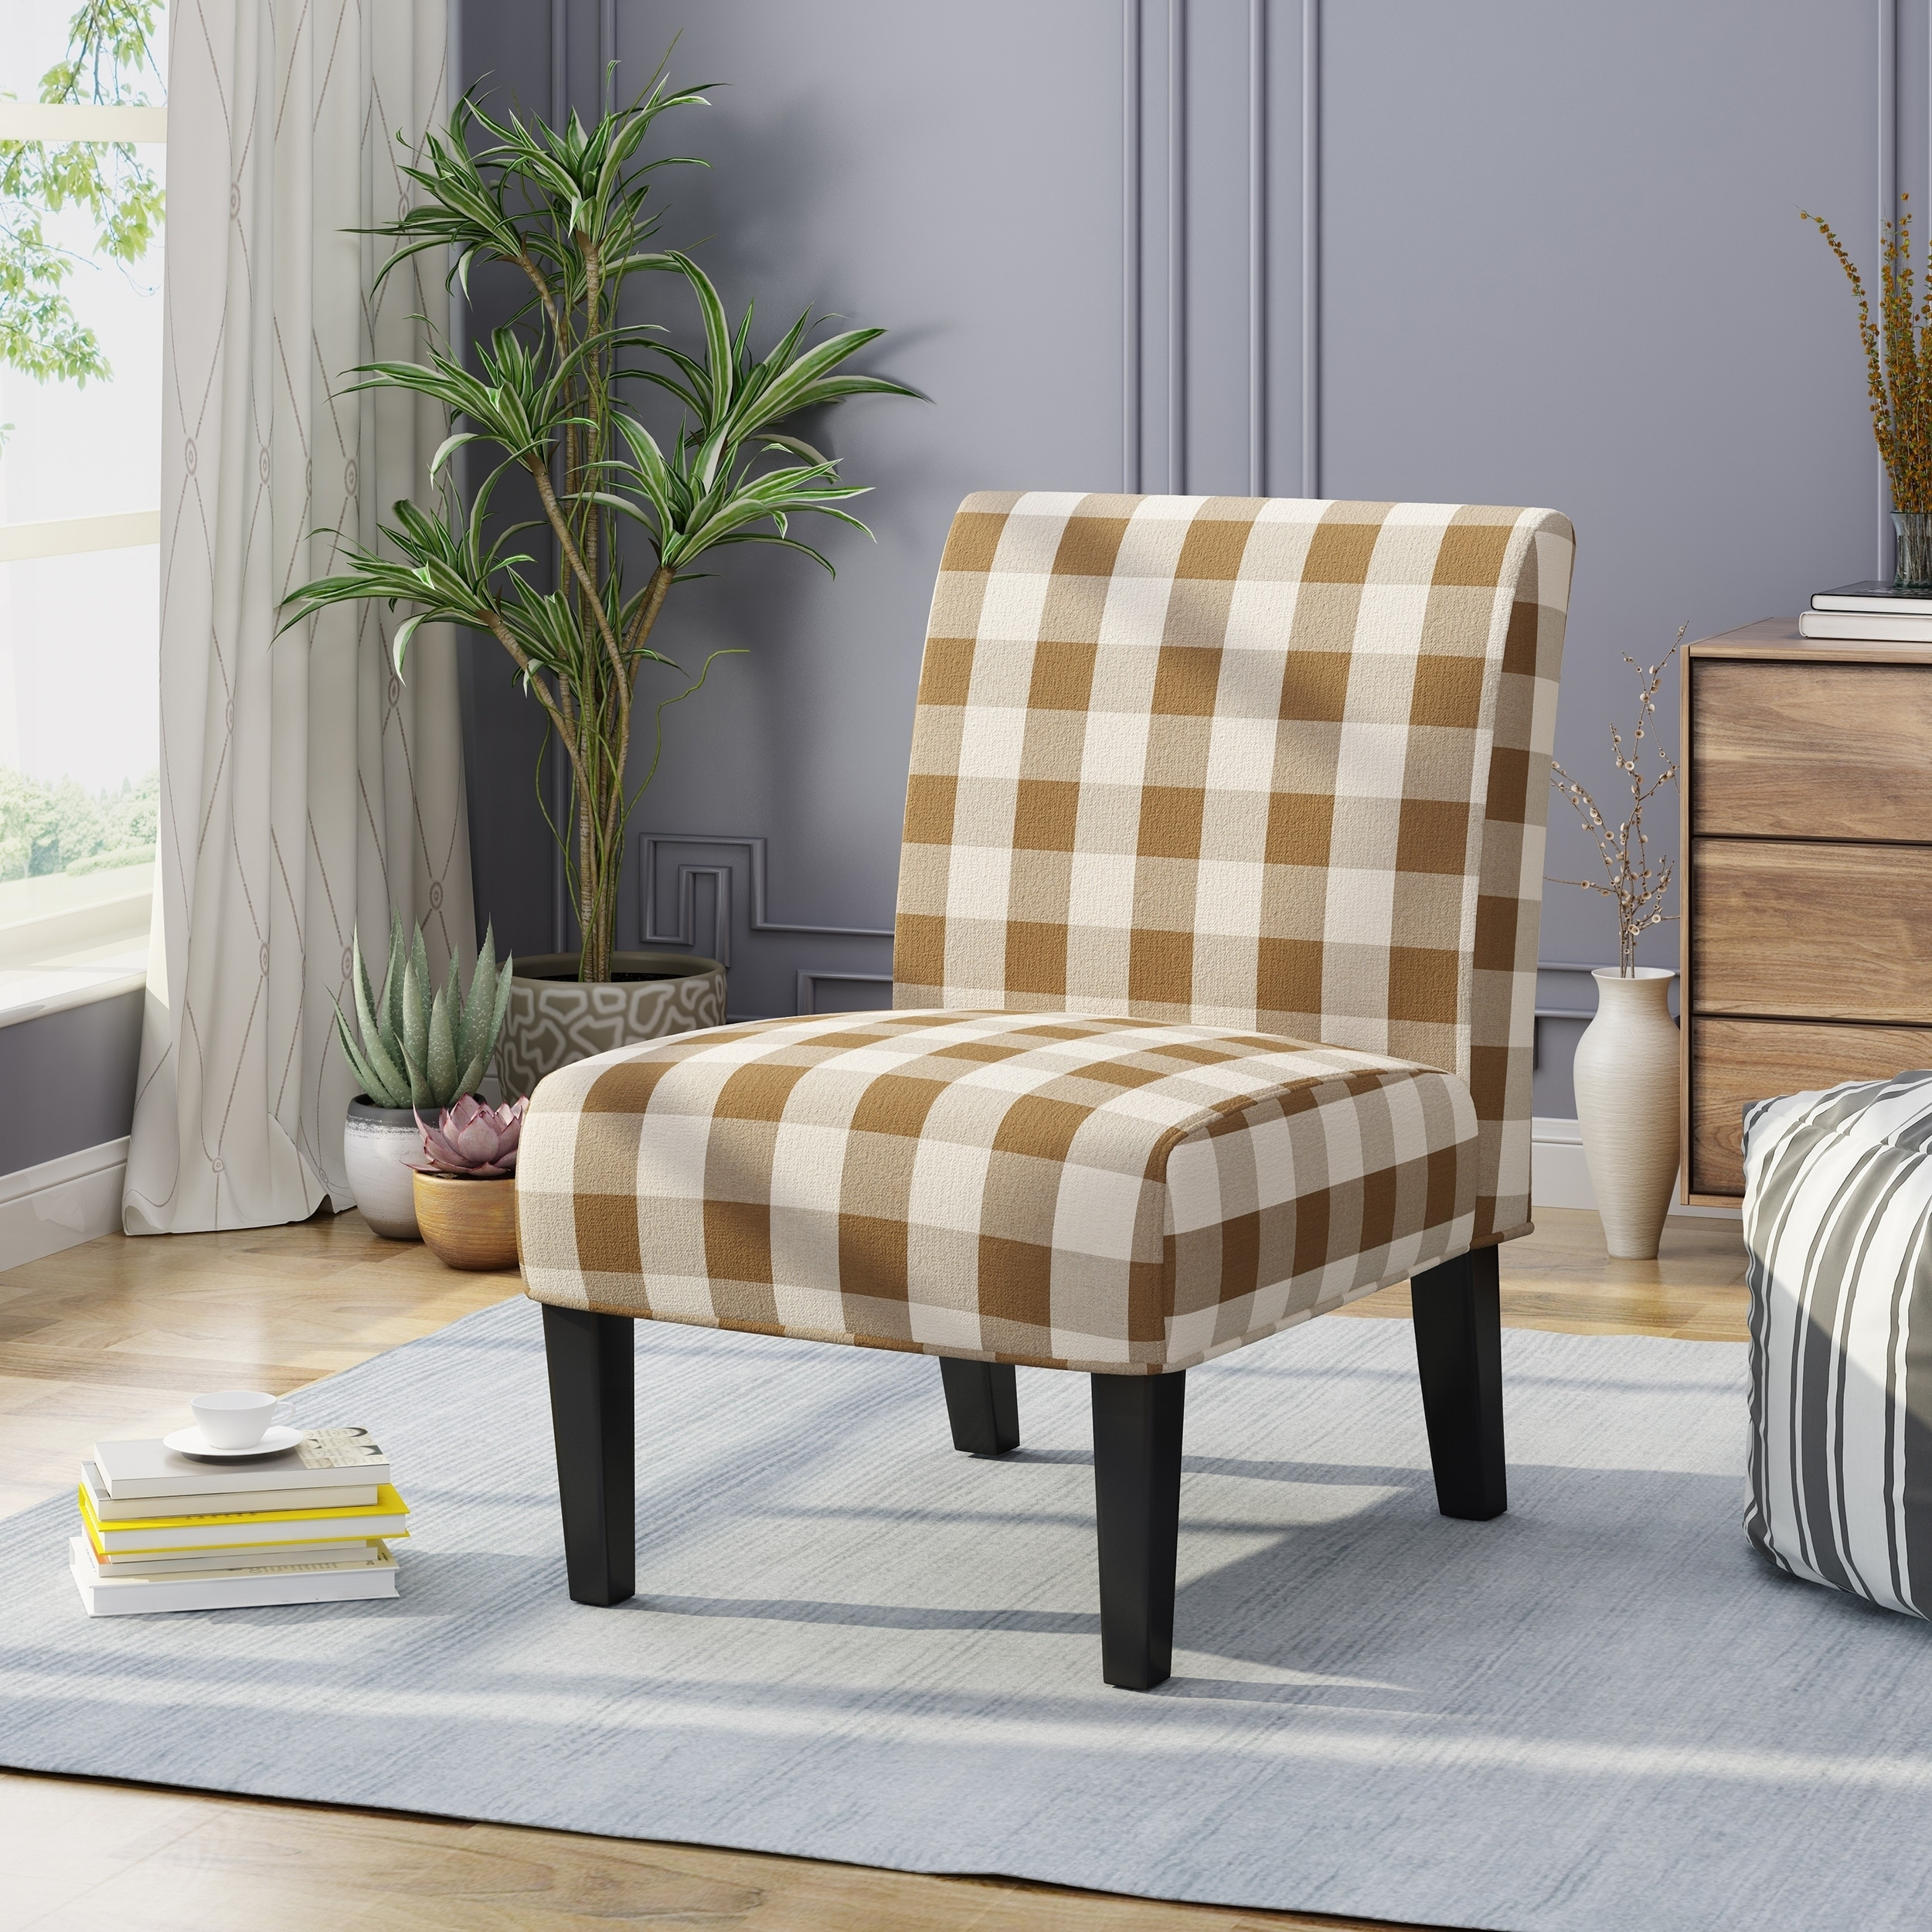 Shop kassi traditional upholstered farmhouse accent chair by by christopher knight home free shipping today overstock com 23130490